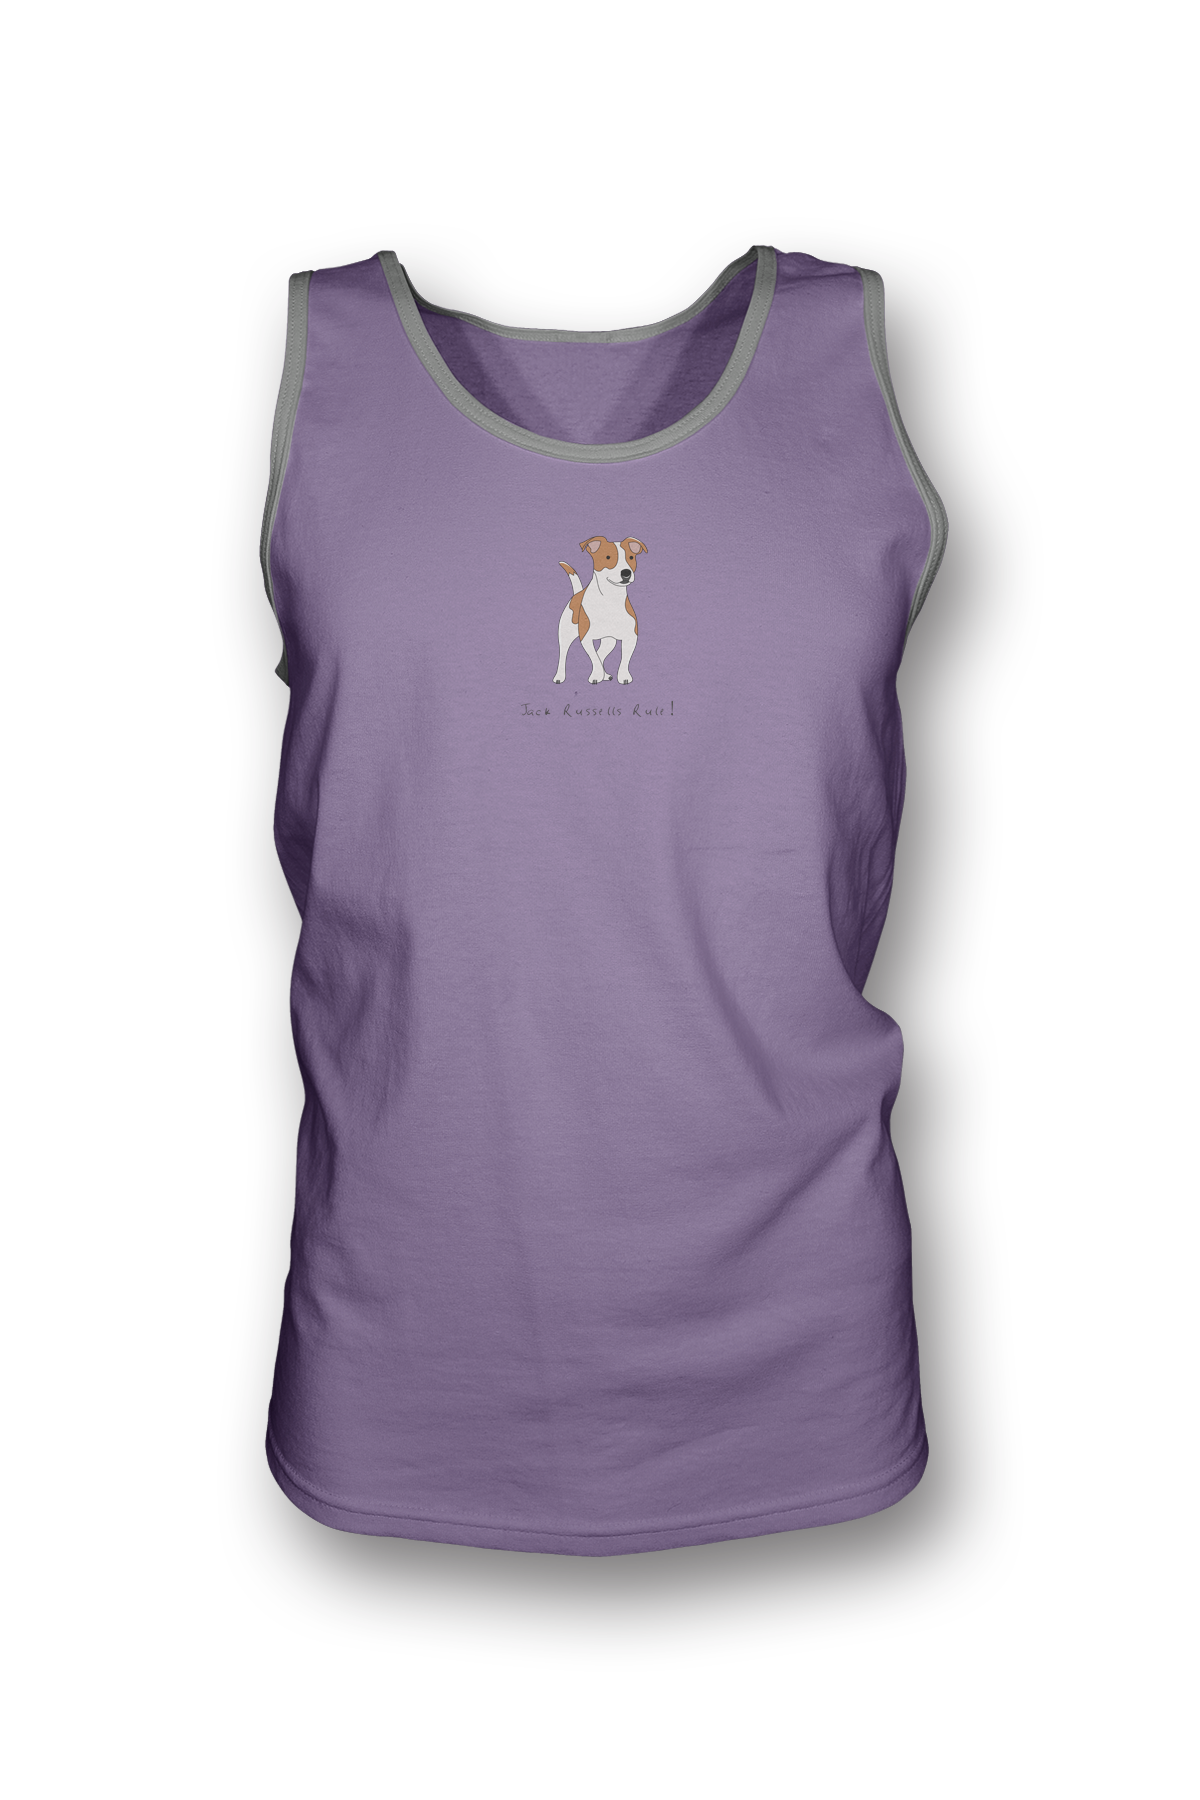 Mens Tank Top T-Shirt - Jack Russells Rule! Heather Purple